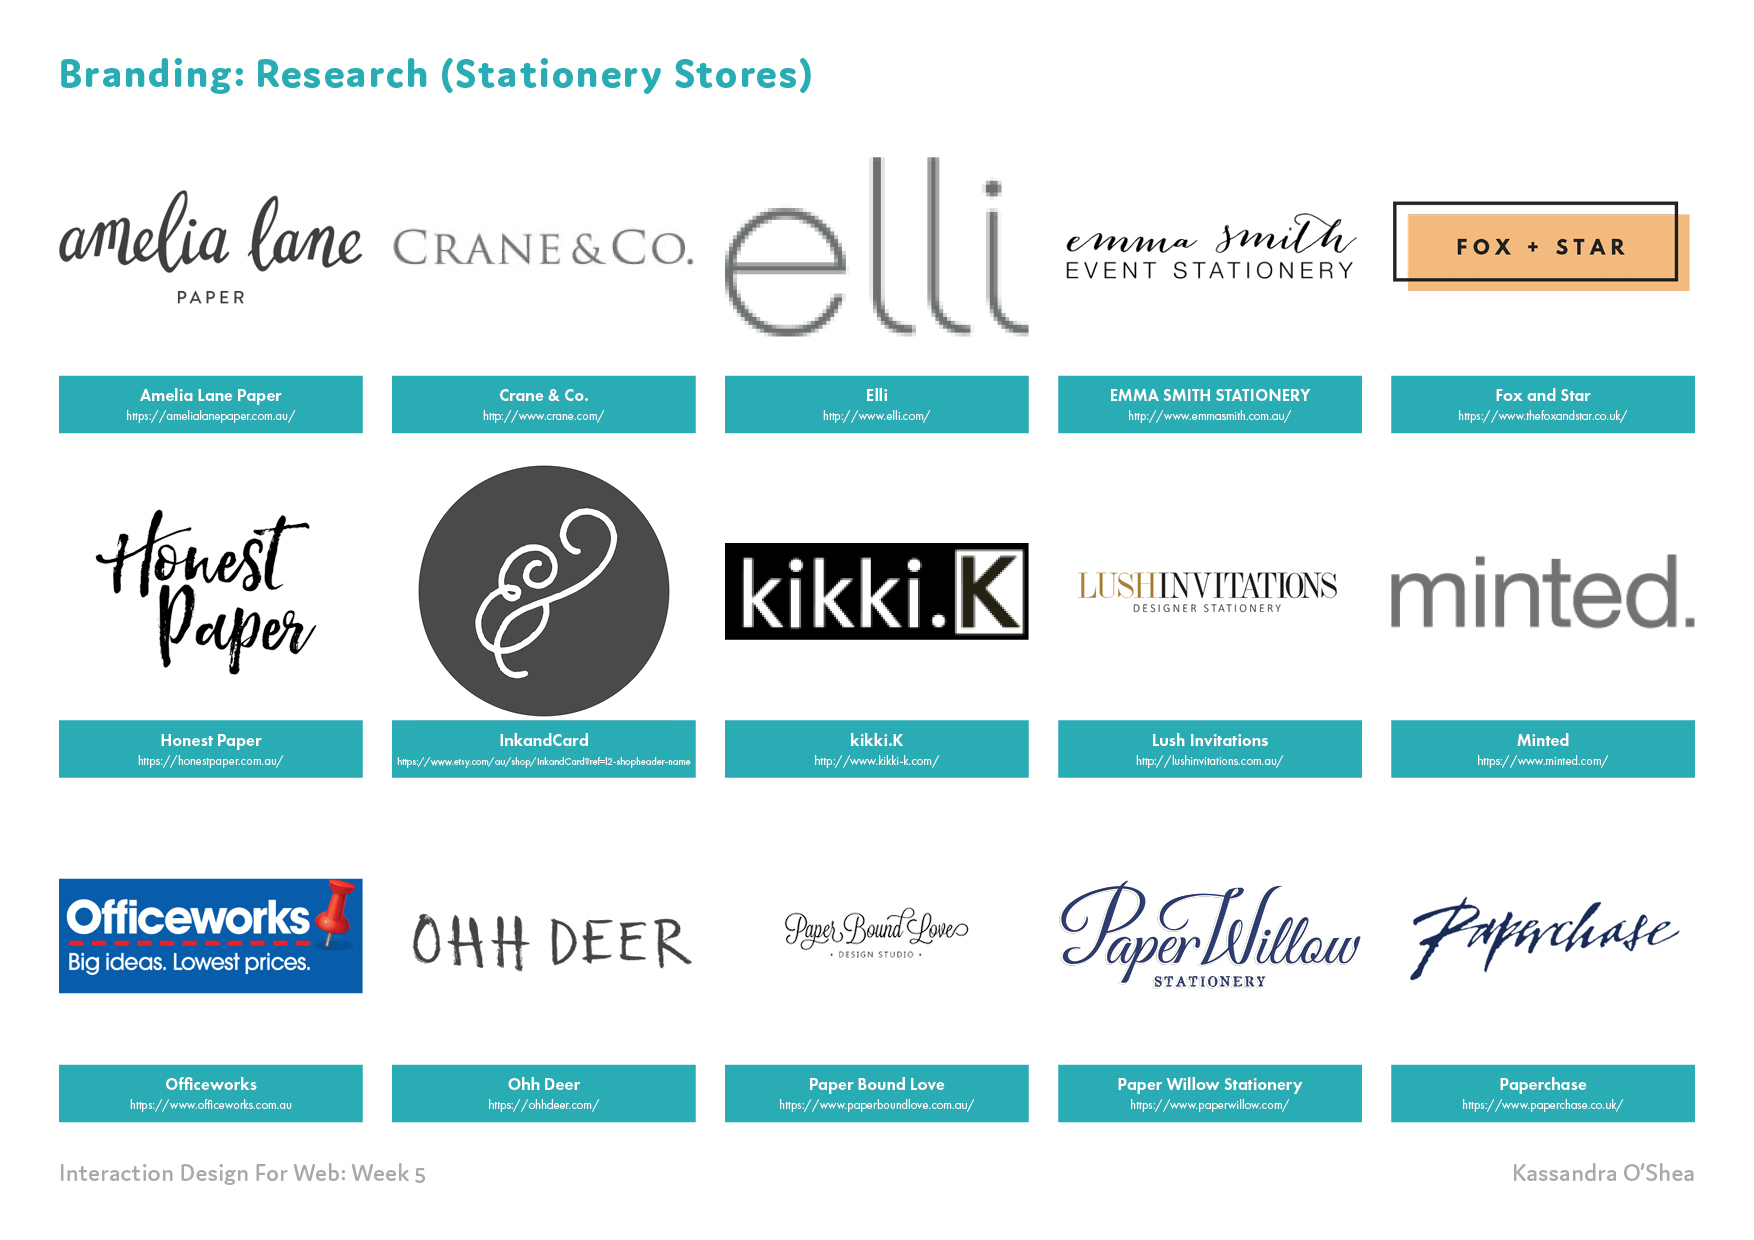 Branding: Research (Stationery Stores)